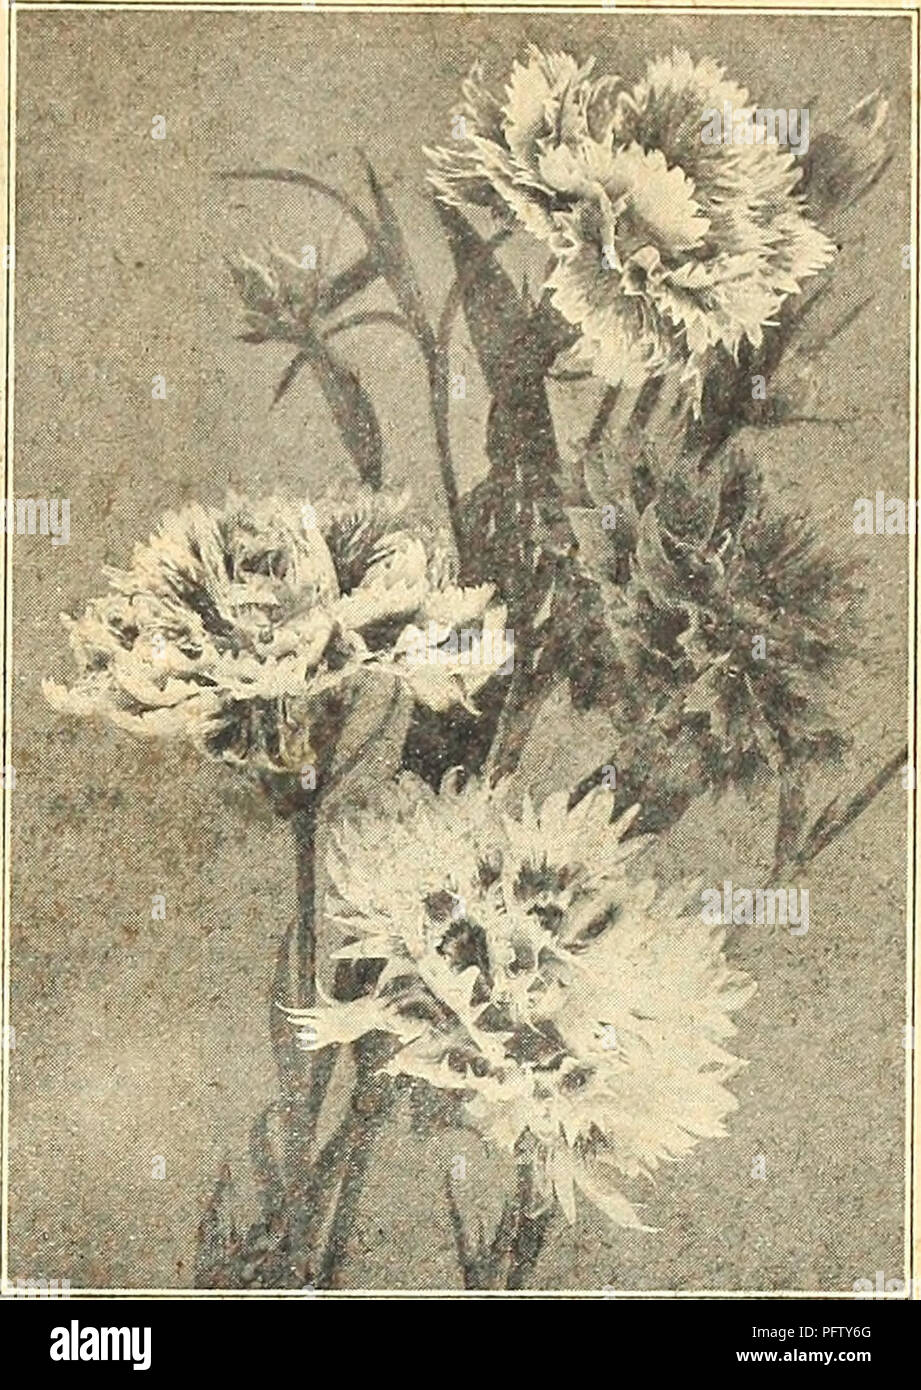 Curries Farm And Garden Annual Spring 1921 46th Year Flowers